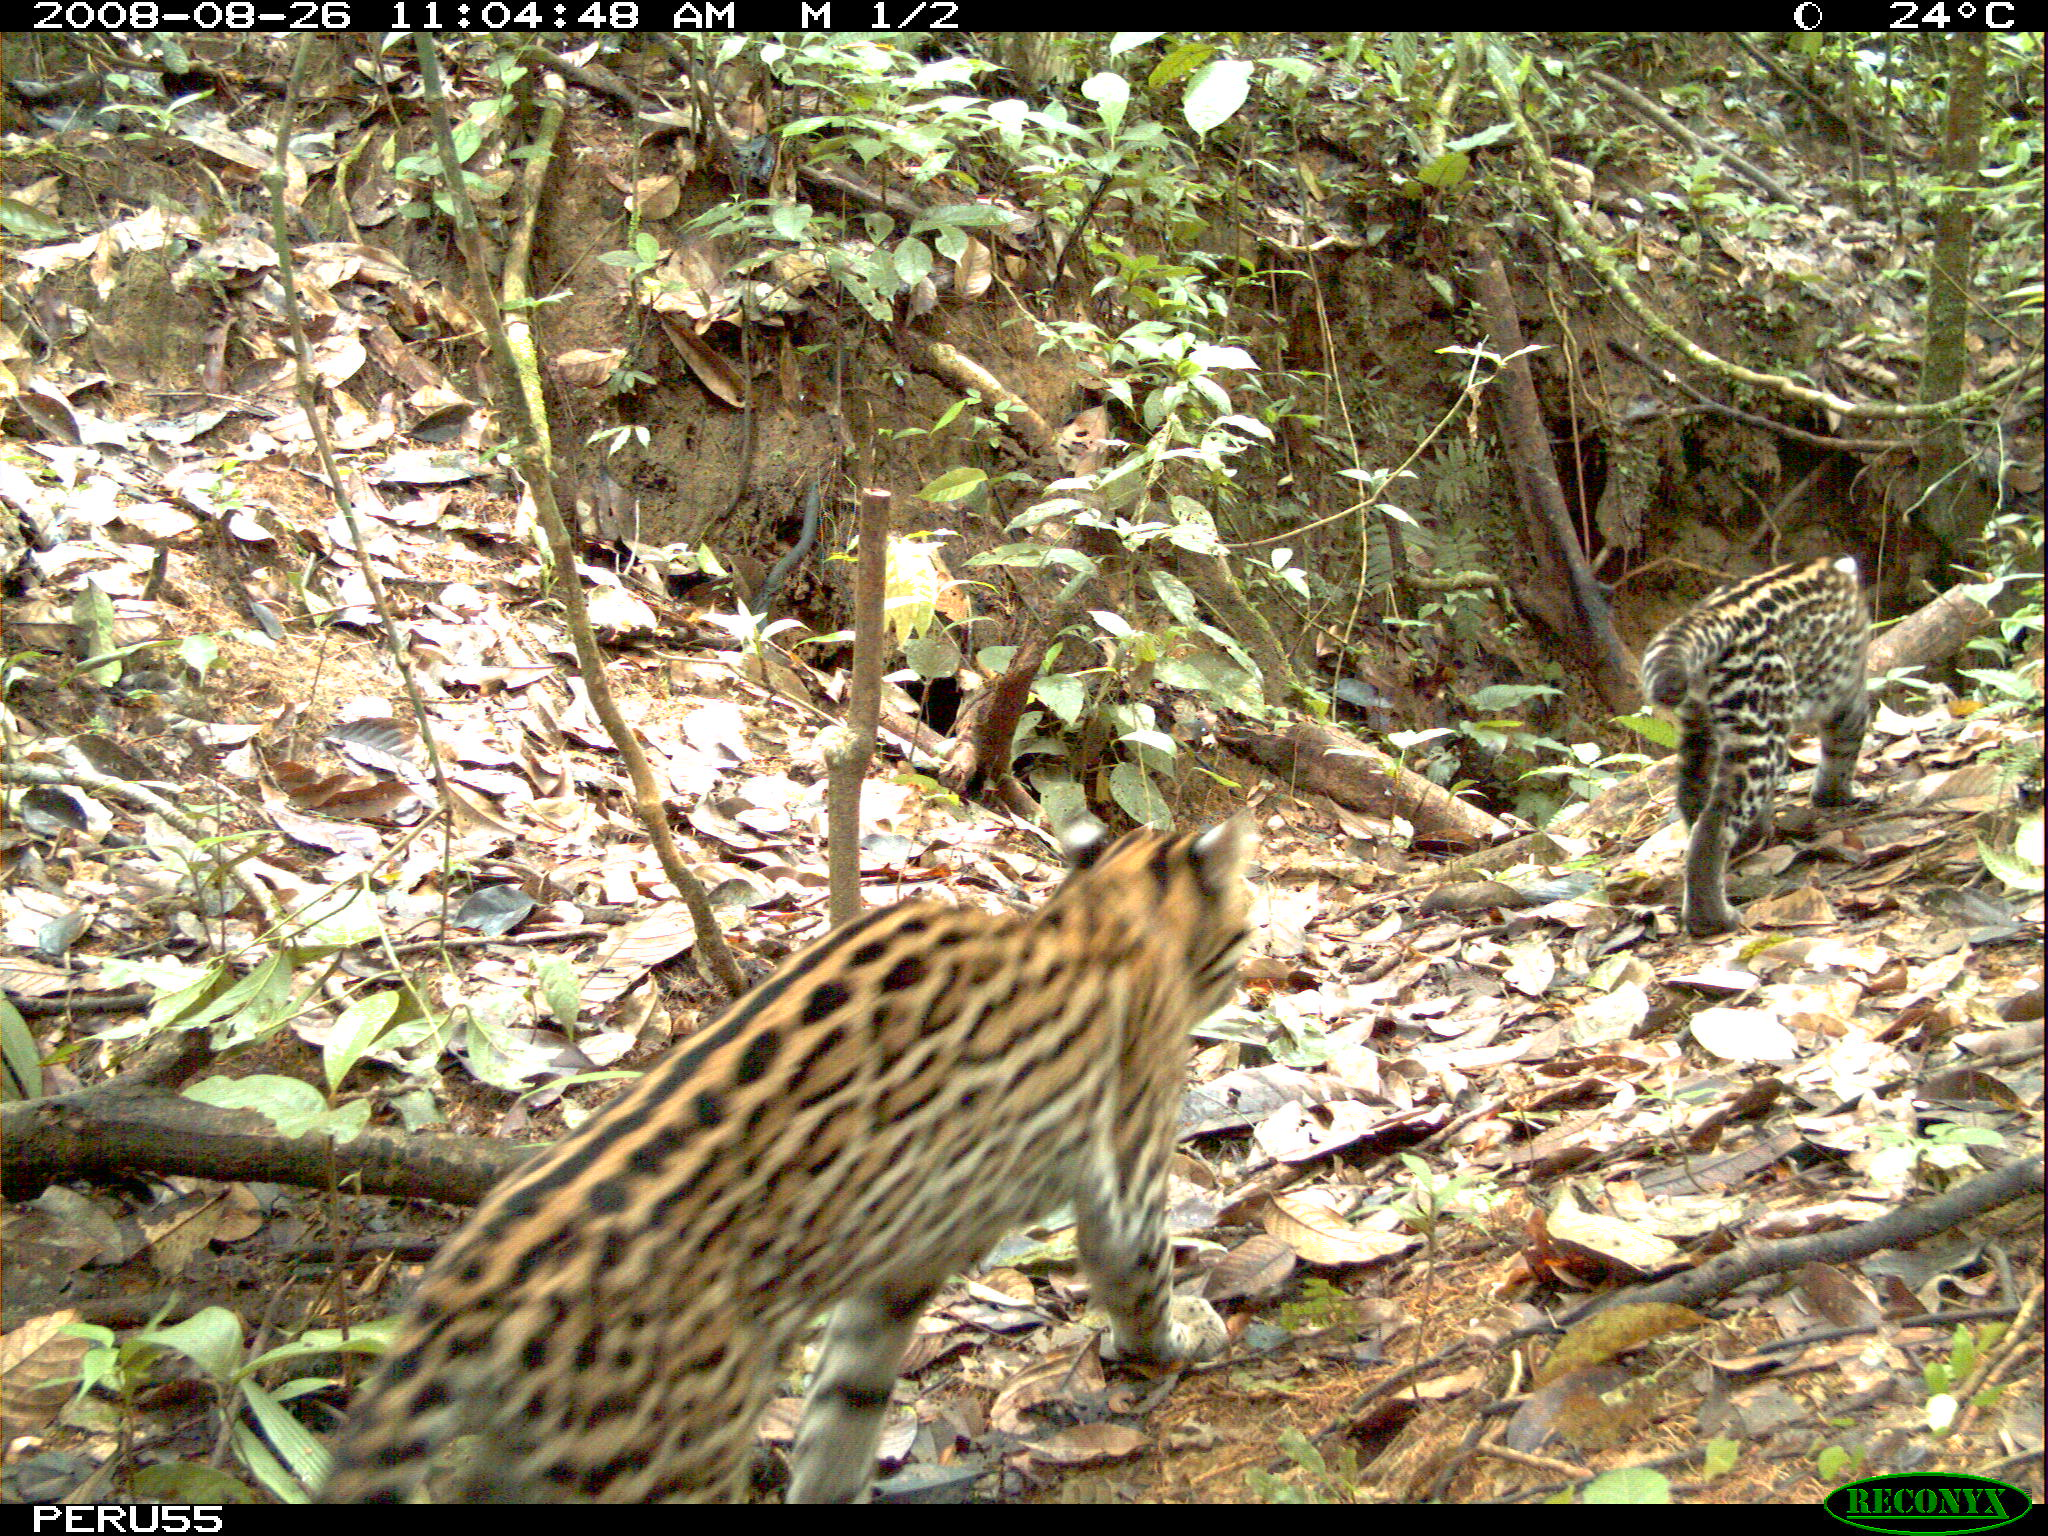 Ocelot group